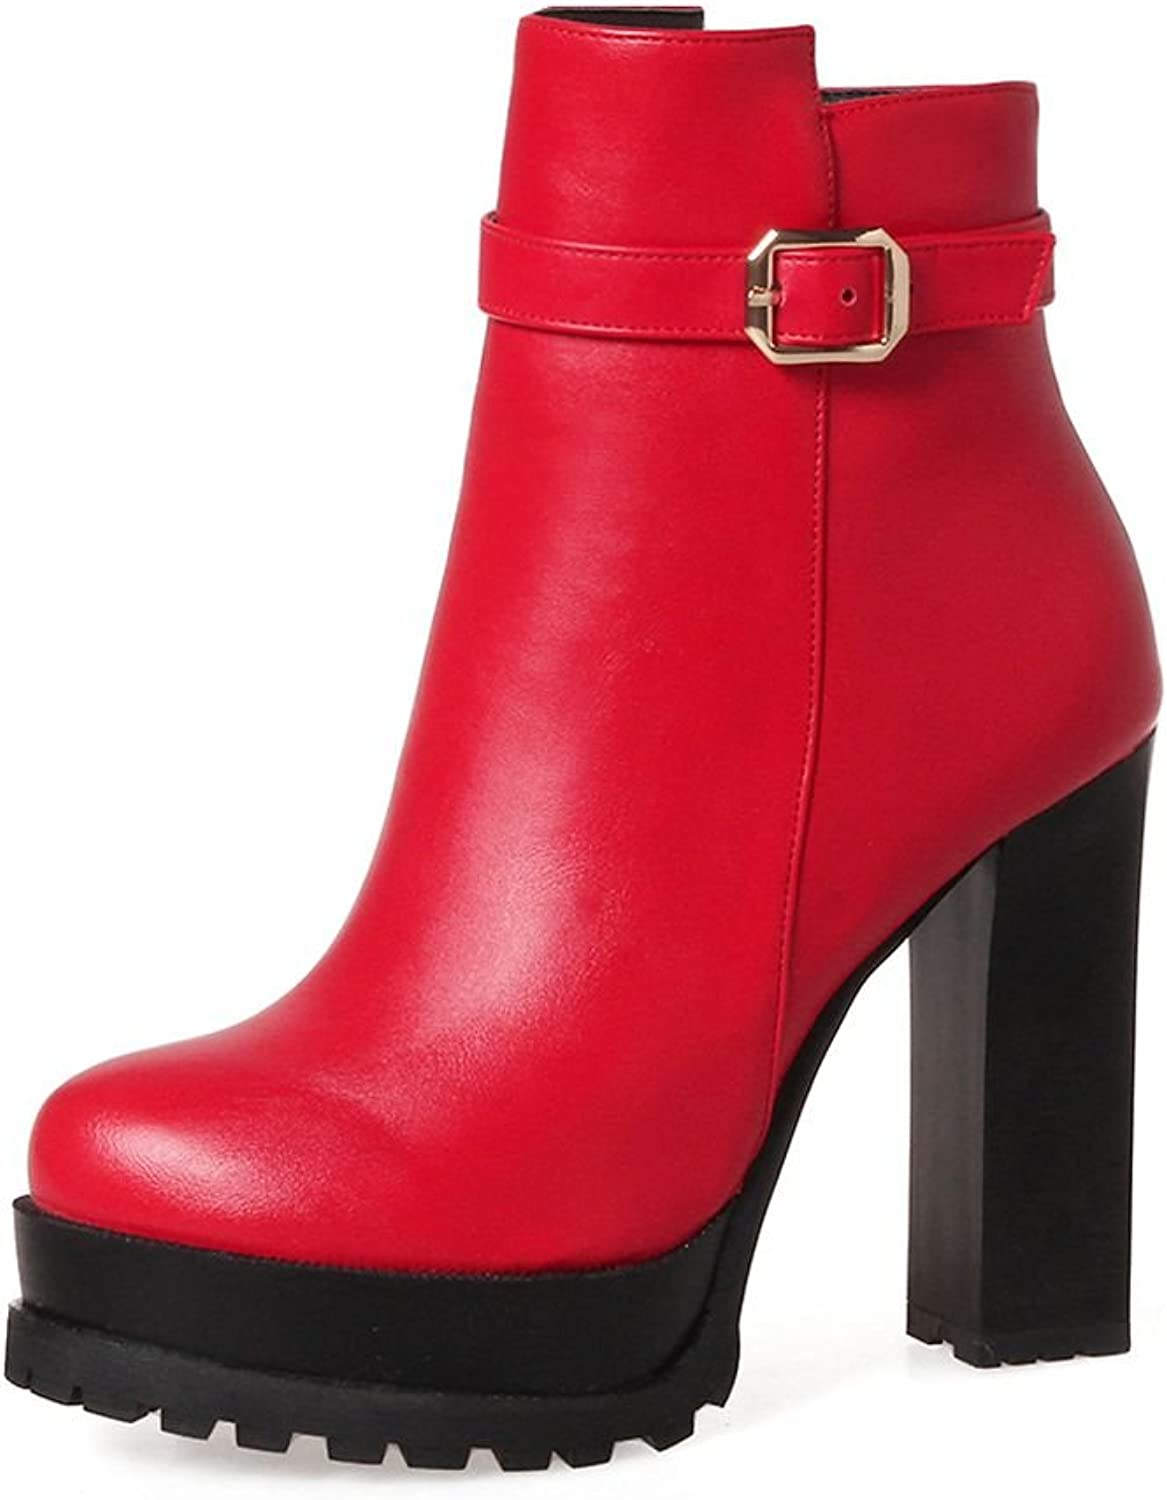 KingRover Women's Zipper Ankle Boots Strap Buckle Platform High Heels Buckle PU Leather Booties